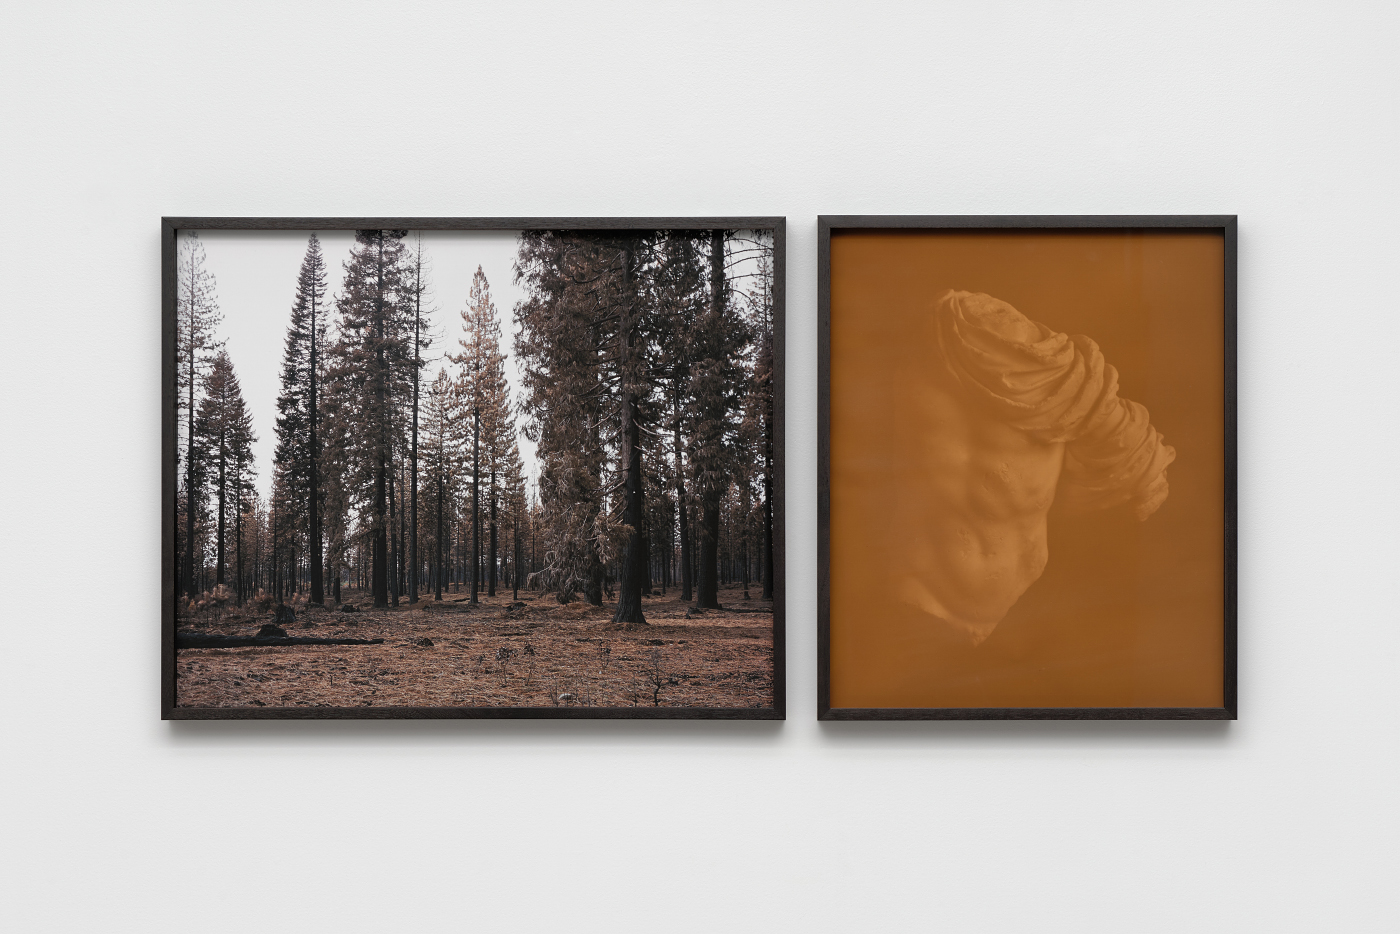 CHRISTINE ELFMAN  Actaeon in Eldorado  and  Torso of Actaeon II , 2016 (diptych) Left: Archival pigment print 22 x 28 inches Right: LI amaranth and stinging nettle dyes on paper 22 x 16 inches Edition varée of 3 + 2AP